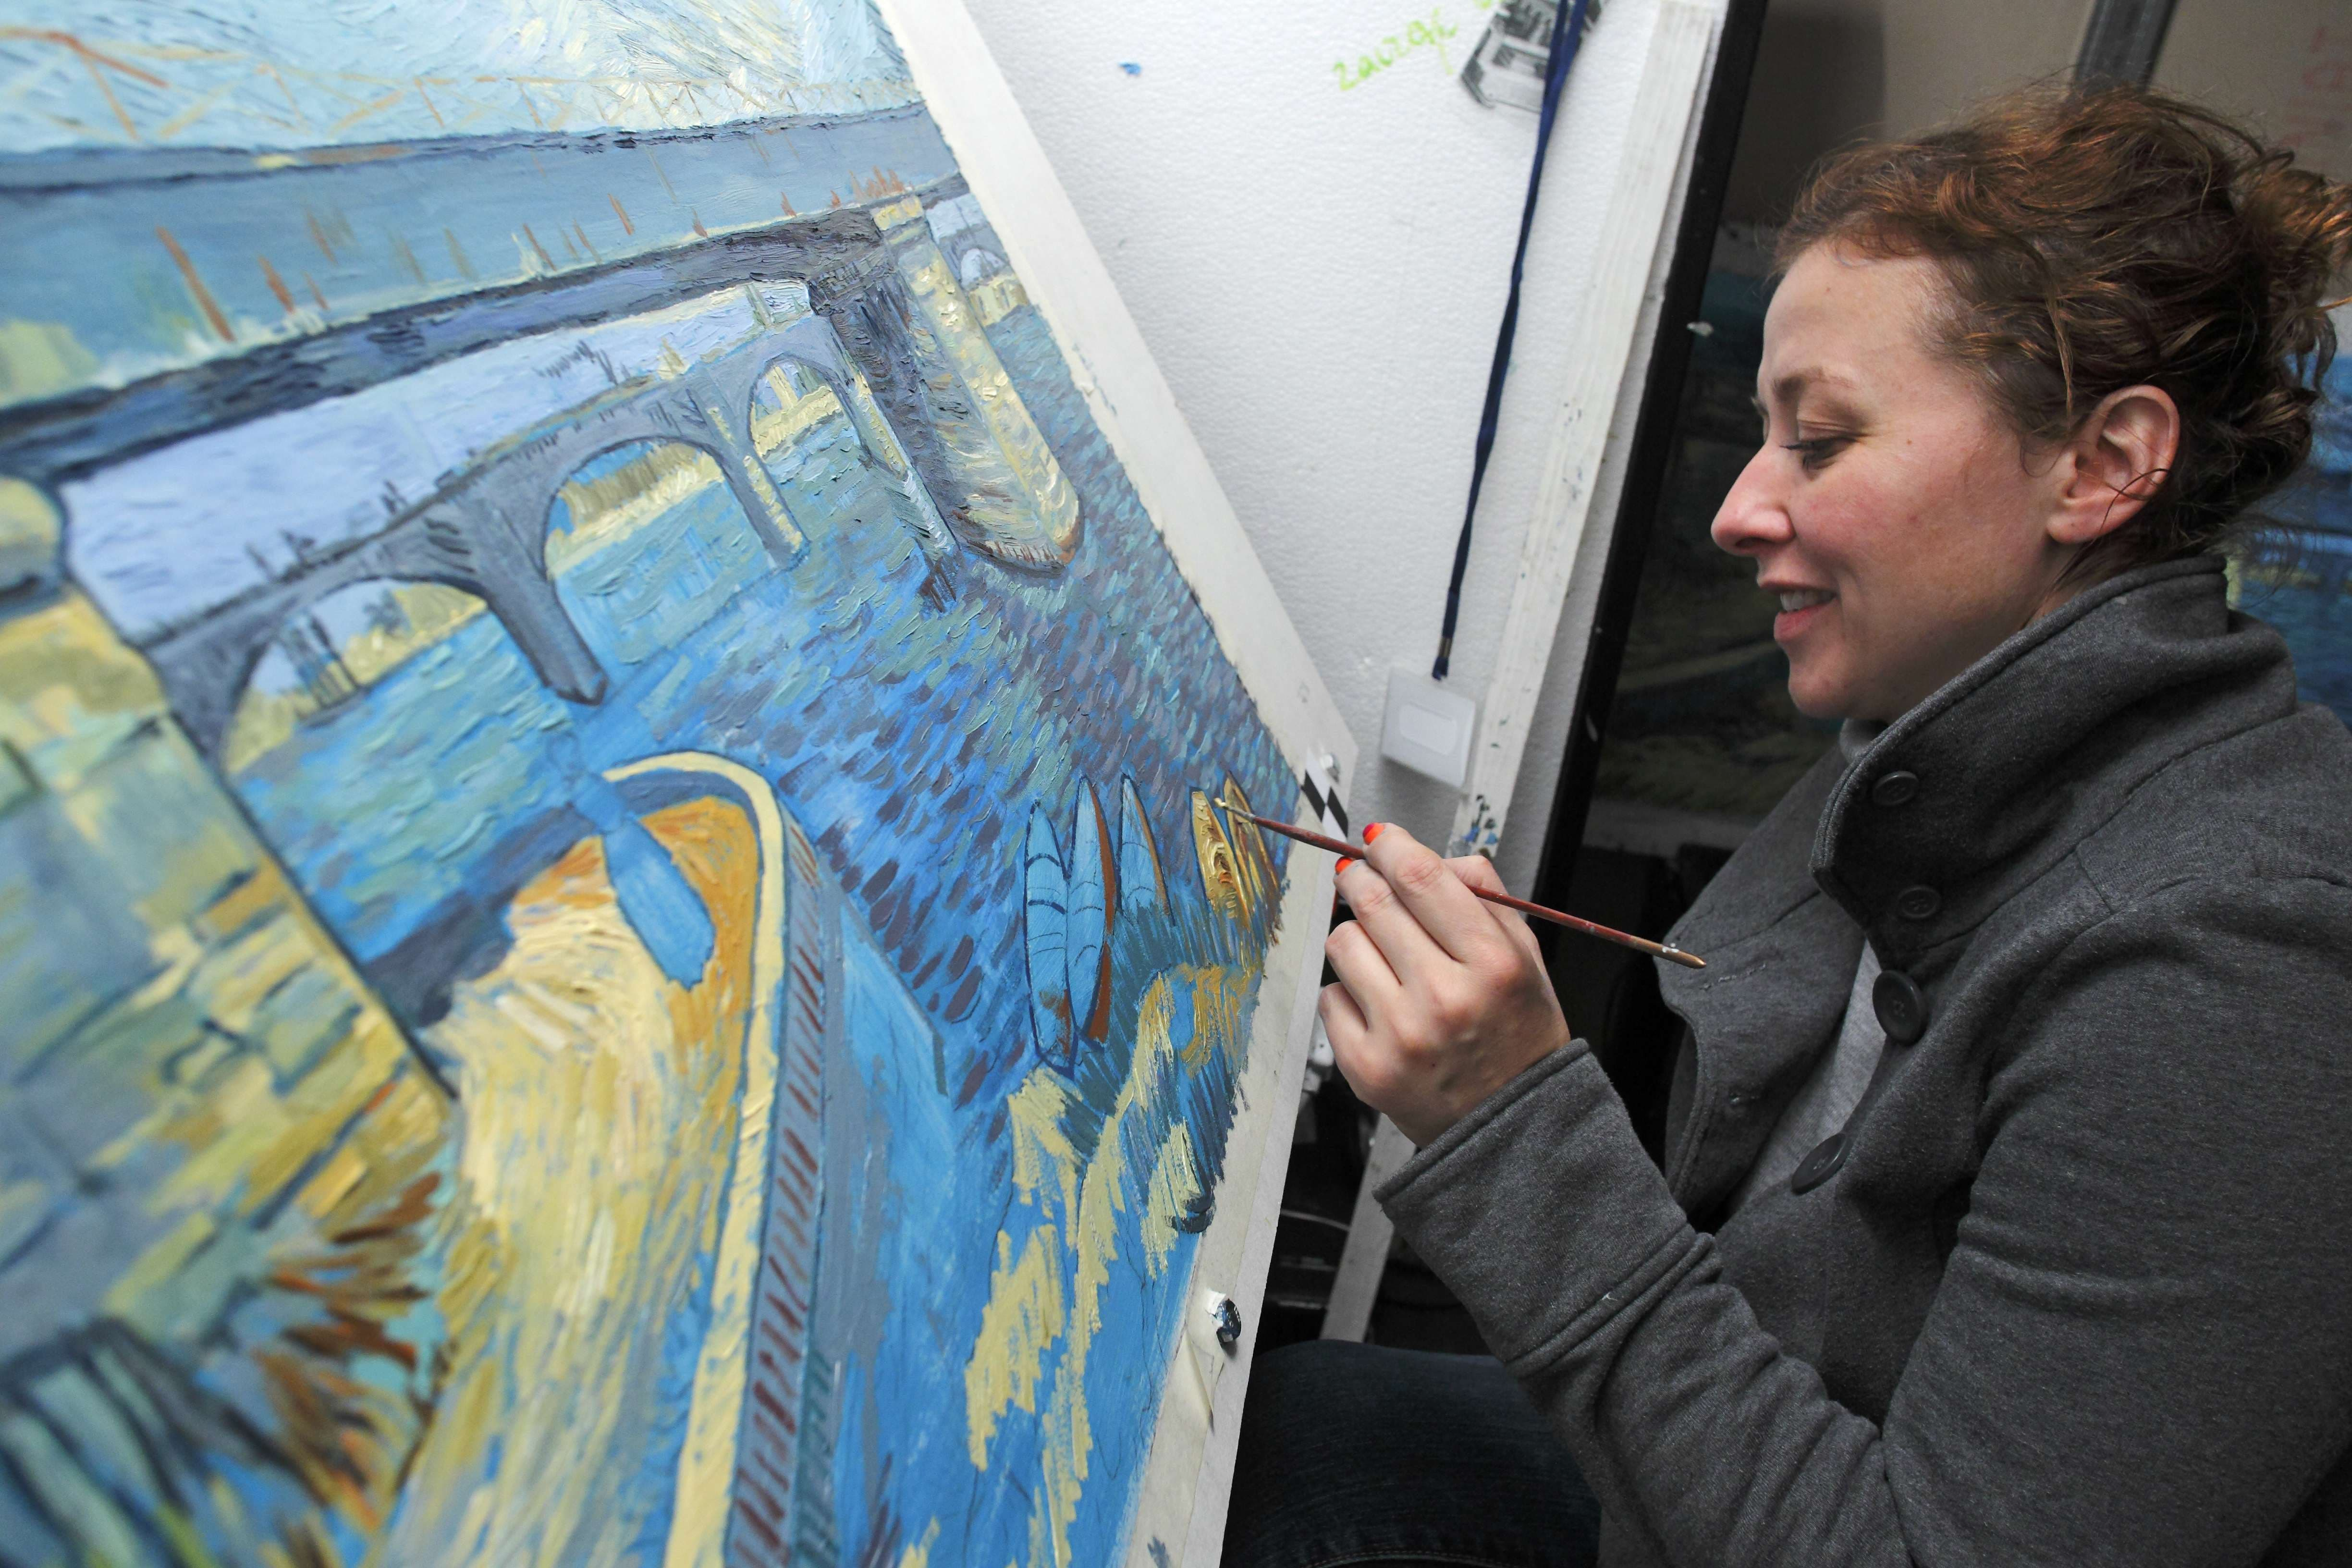 Danuta Roman recreates a Vincent van Gogh painting at a film studio in the northern Polish city of Gdansk on December 5, 2014. (AFP)